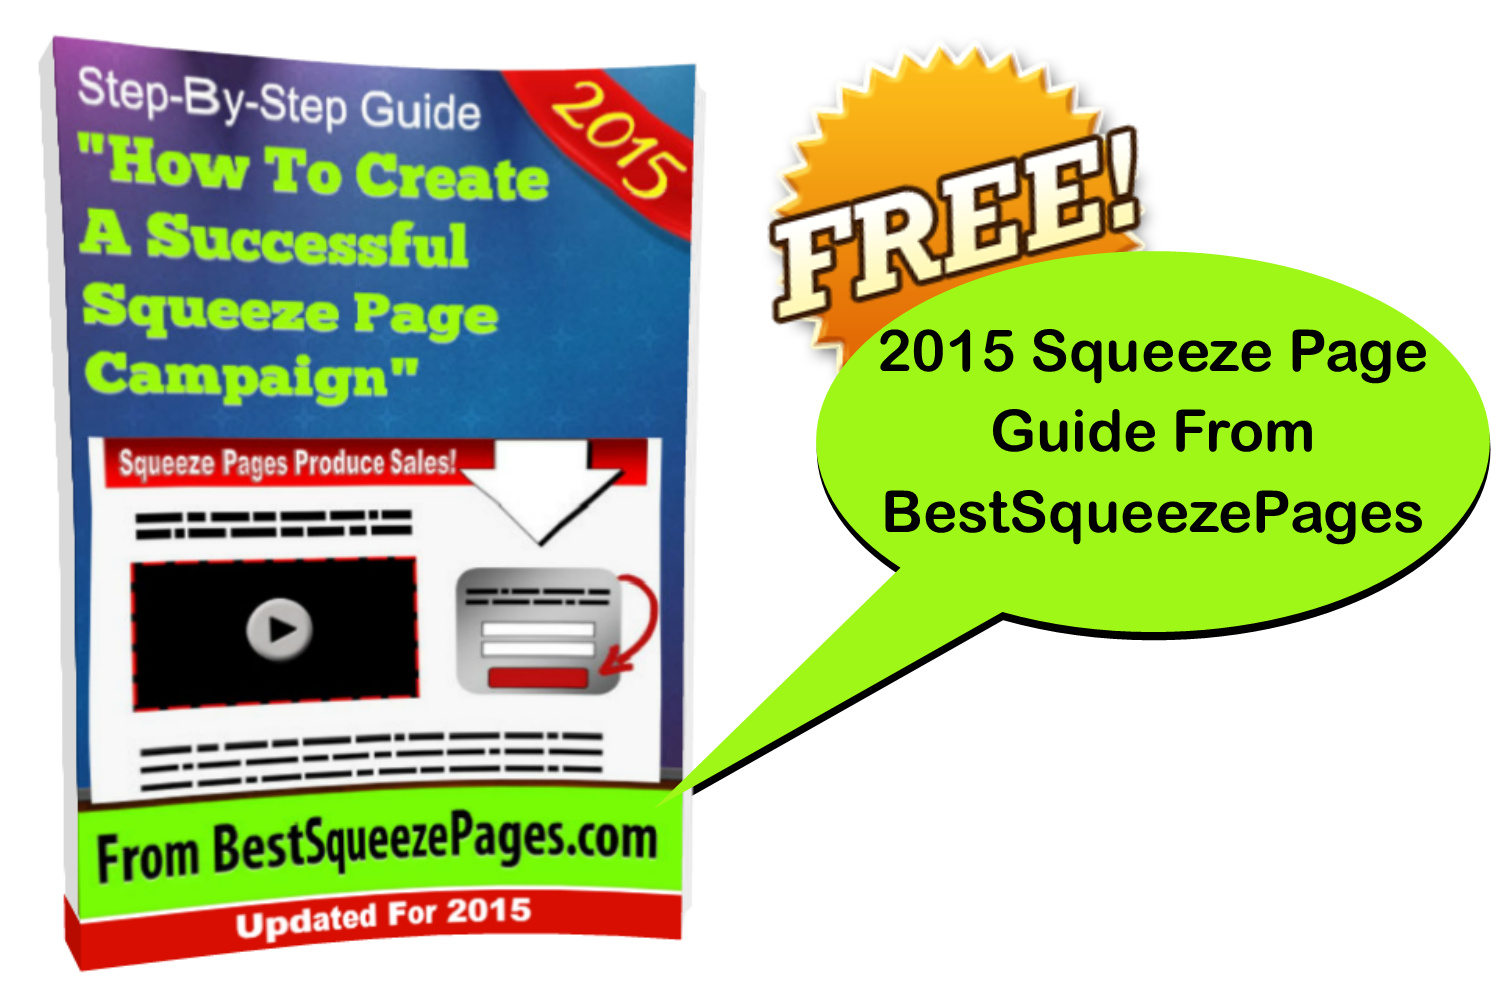 Squeeze Page Guide 2015